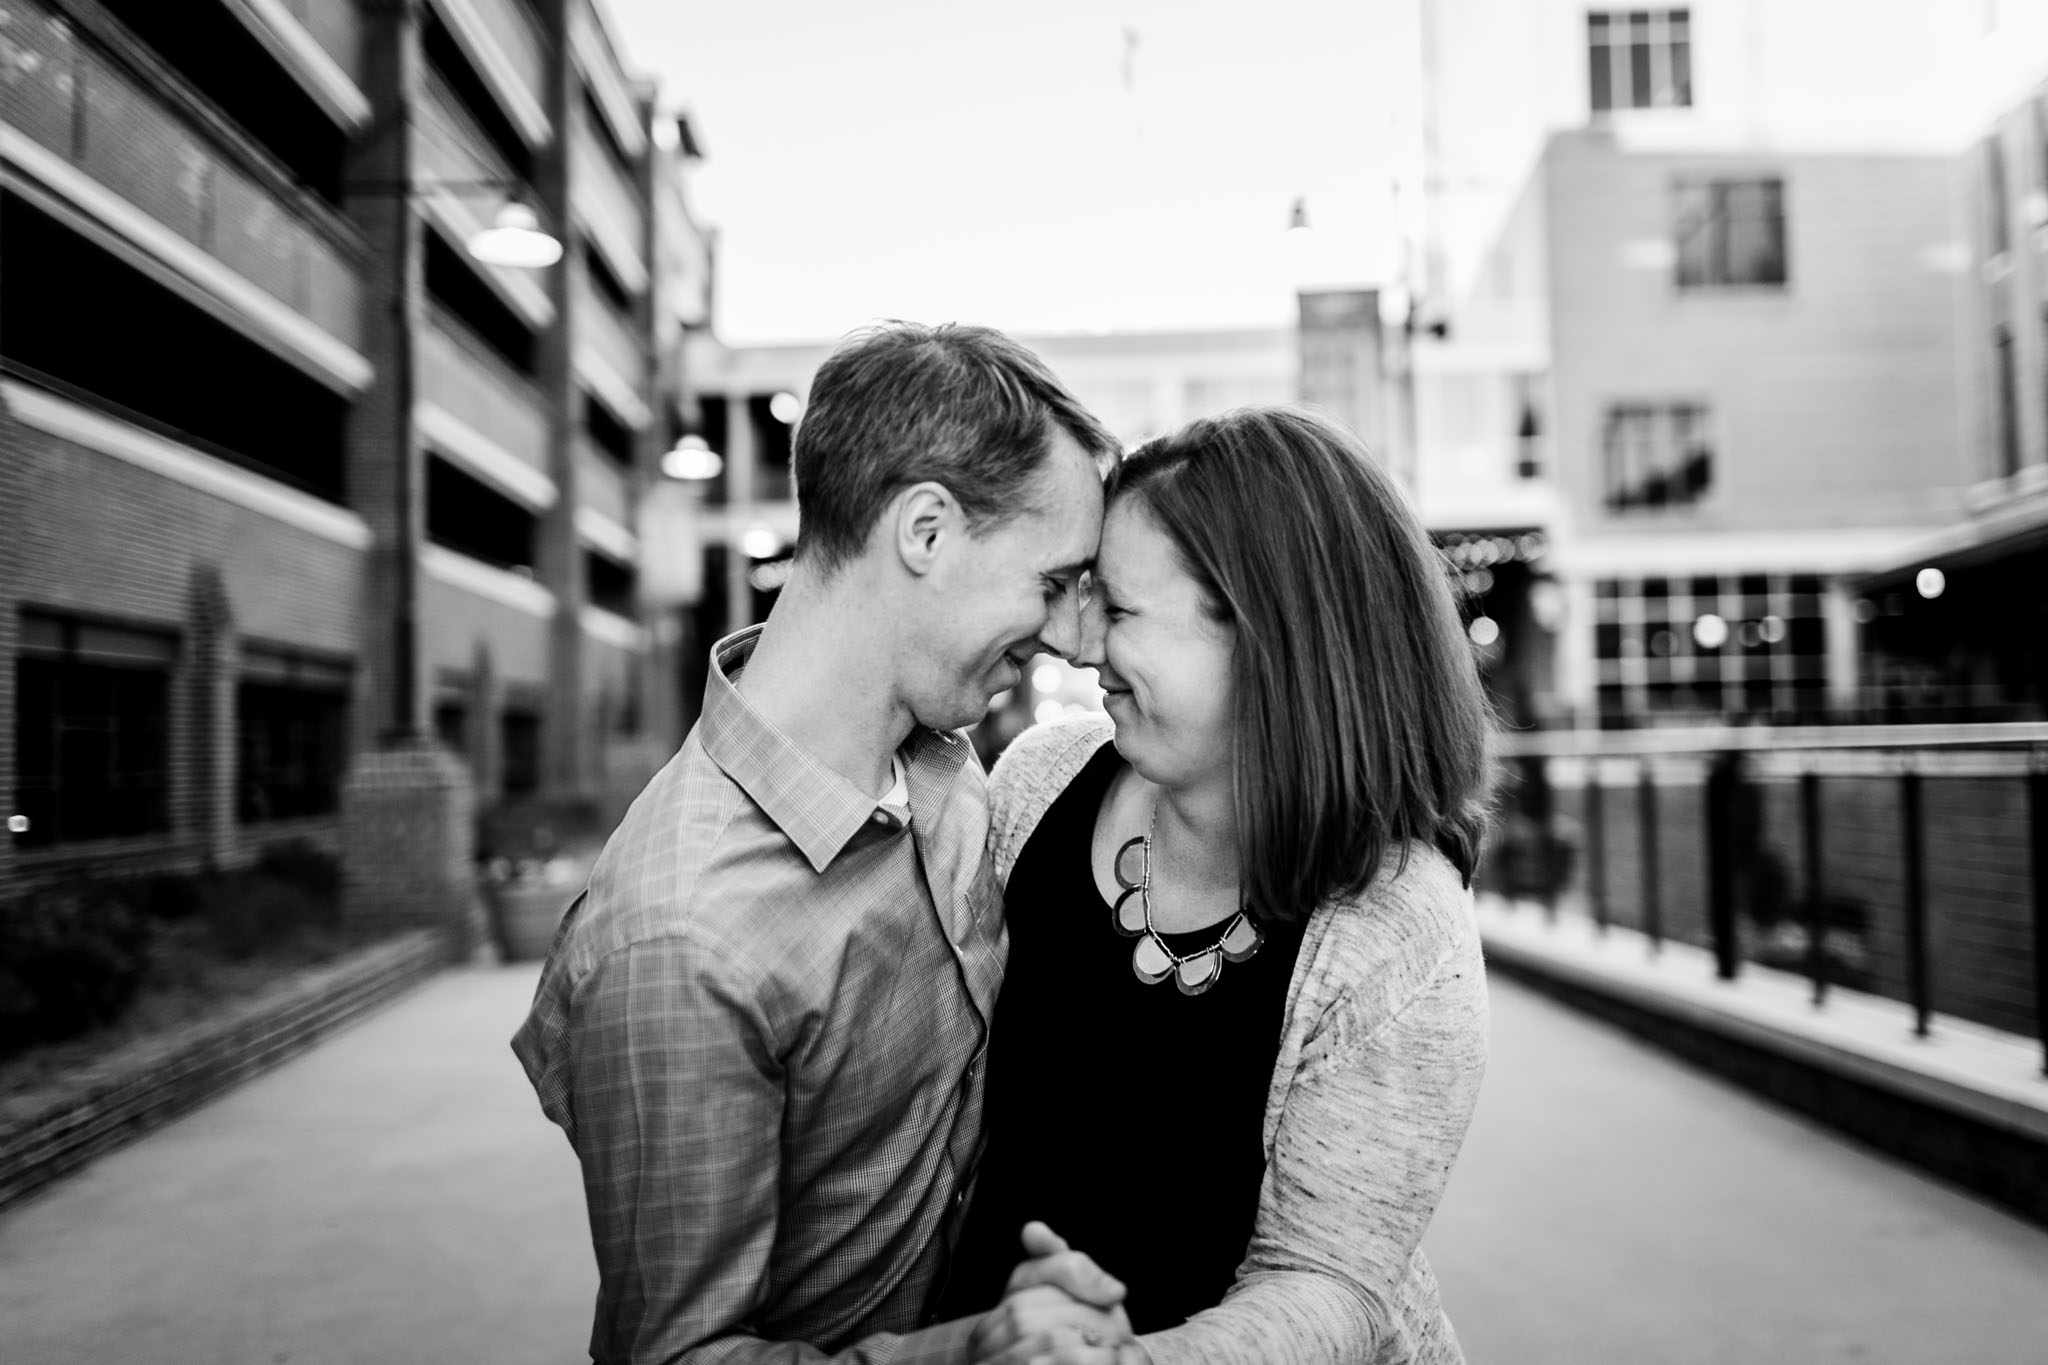 Durham Photographer   Couple dancing together at American Tobacco Campus   By G. Lin Photography